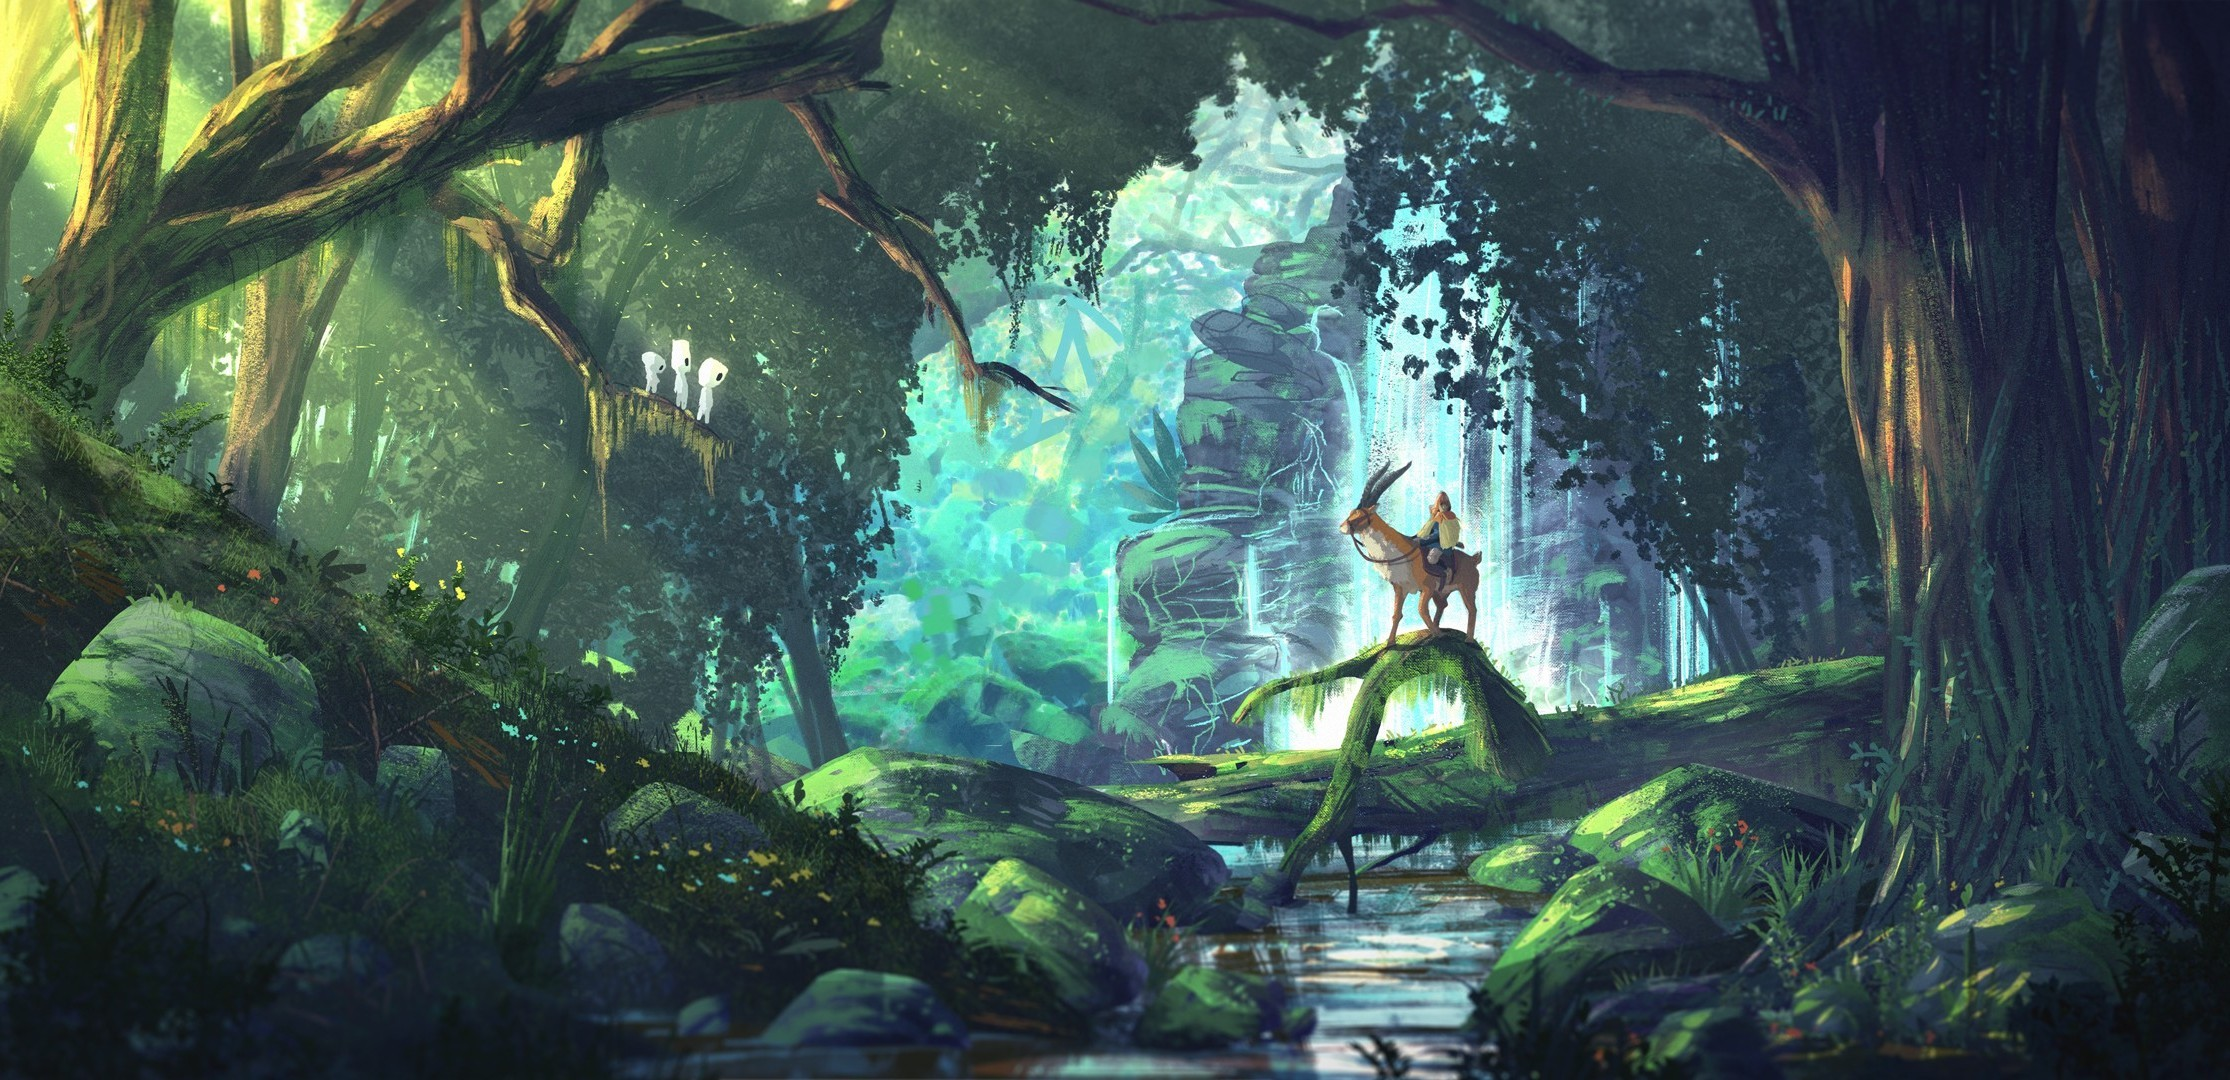 Anime Inspired Hd Fantasy Wallpapers For Your Collection: Studio Ghibli Wallpapers (71+ Images